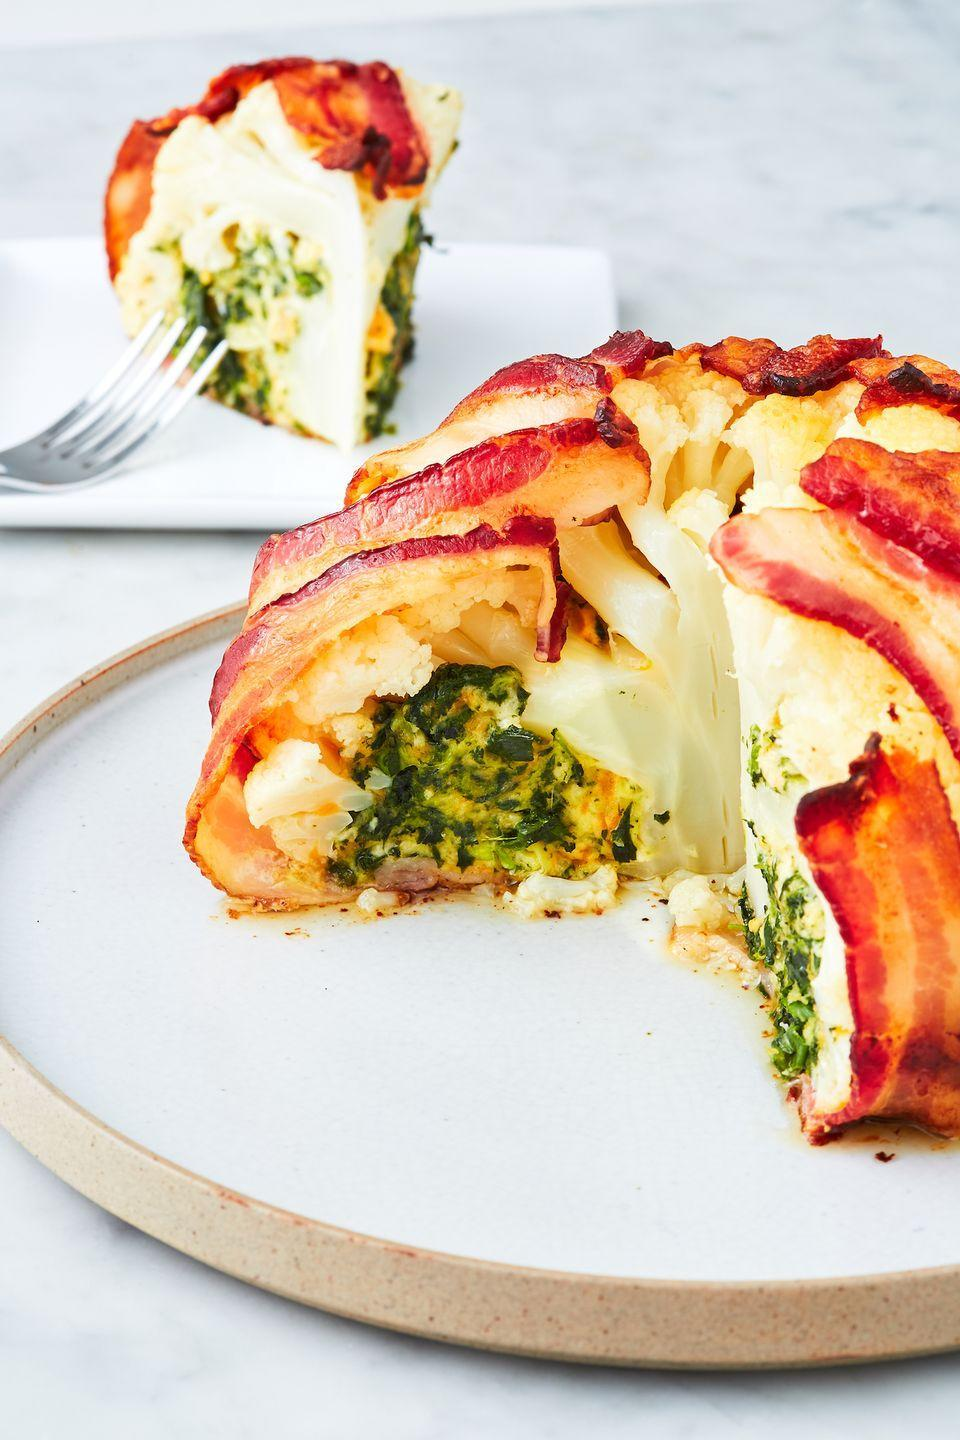 """<p>Just a little spinach dip stuffed in there.</p><p>Get the recipe from <a href=""""https://www.delish.com/cooking/recipe-ideas/a26882653/bacon-wrapped-cauliflower-recipe/"""" rel=""""nofollow noopener"""" target=""""_blank"""" data-ylk=""""slk:Delish"""" class=""""link rapid-noclick-resp"""">Delish</a>.</p>"""